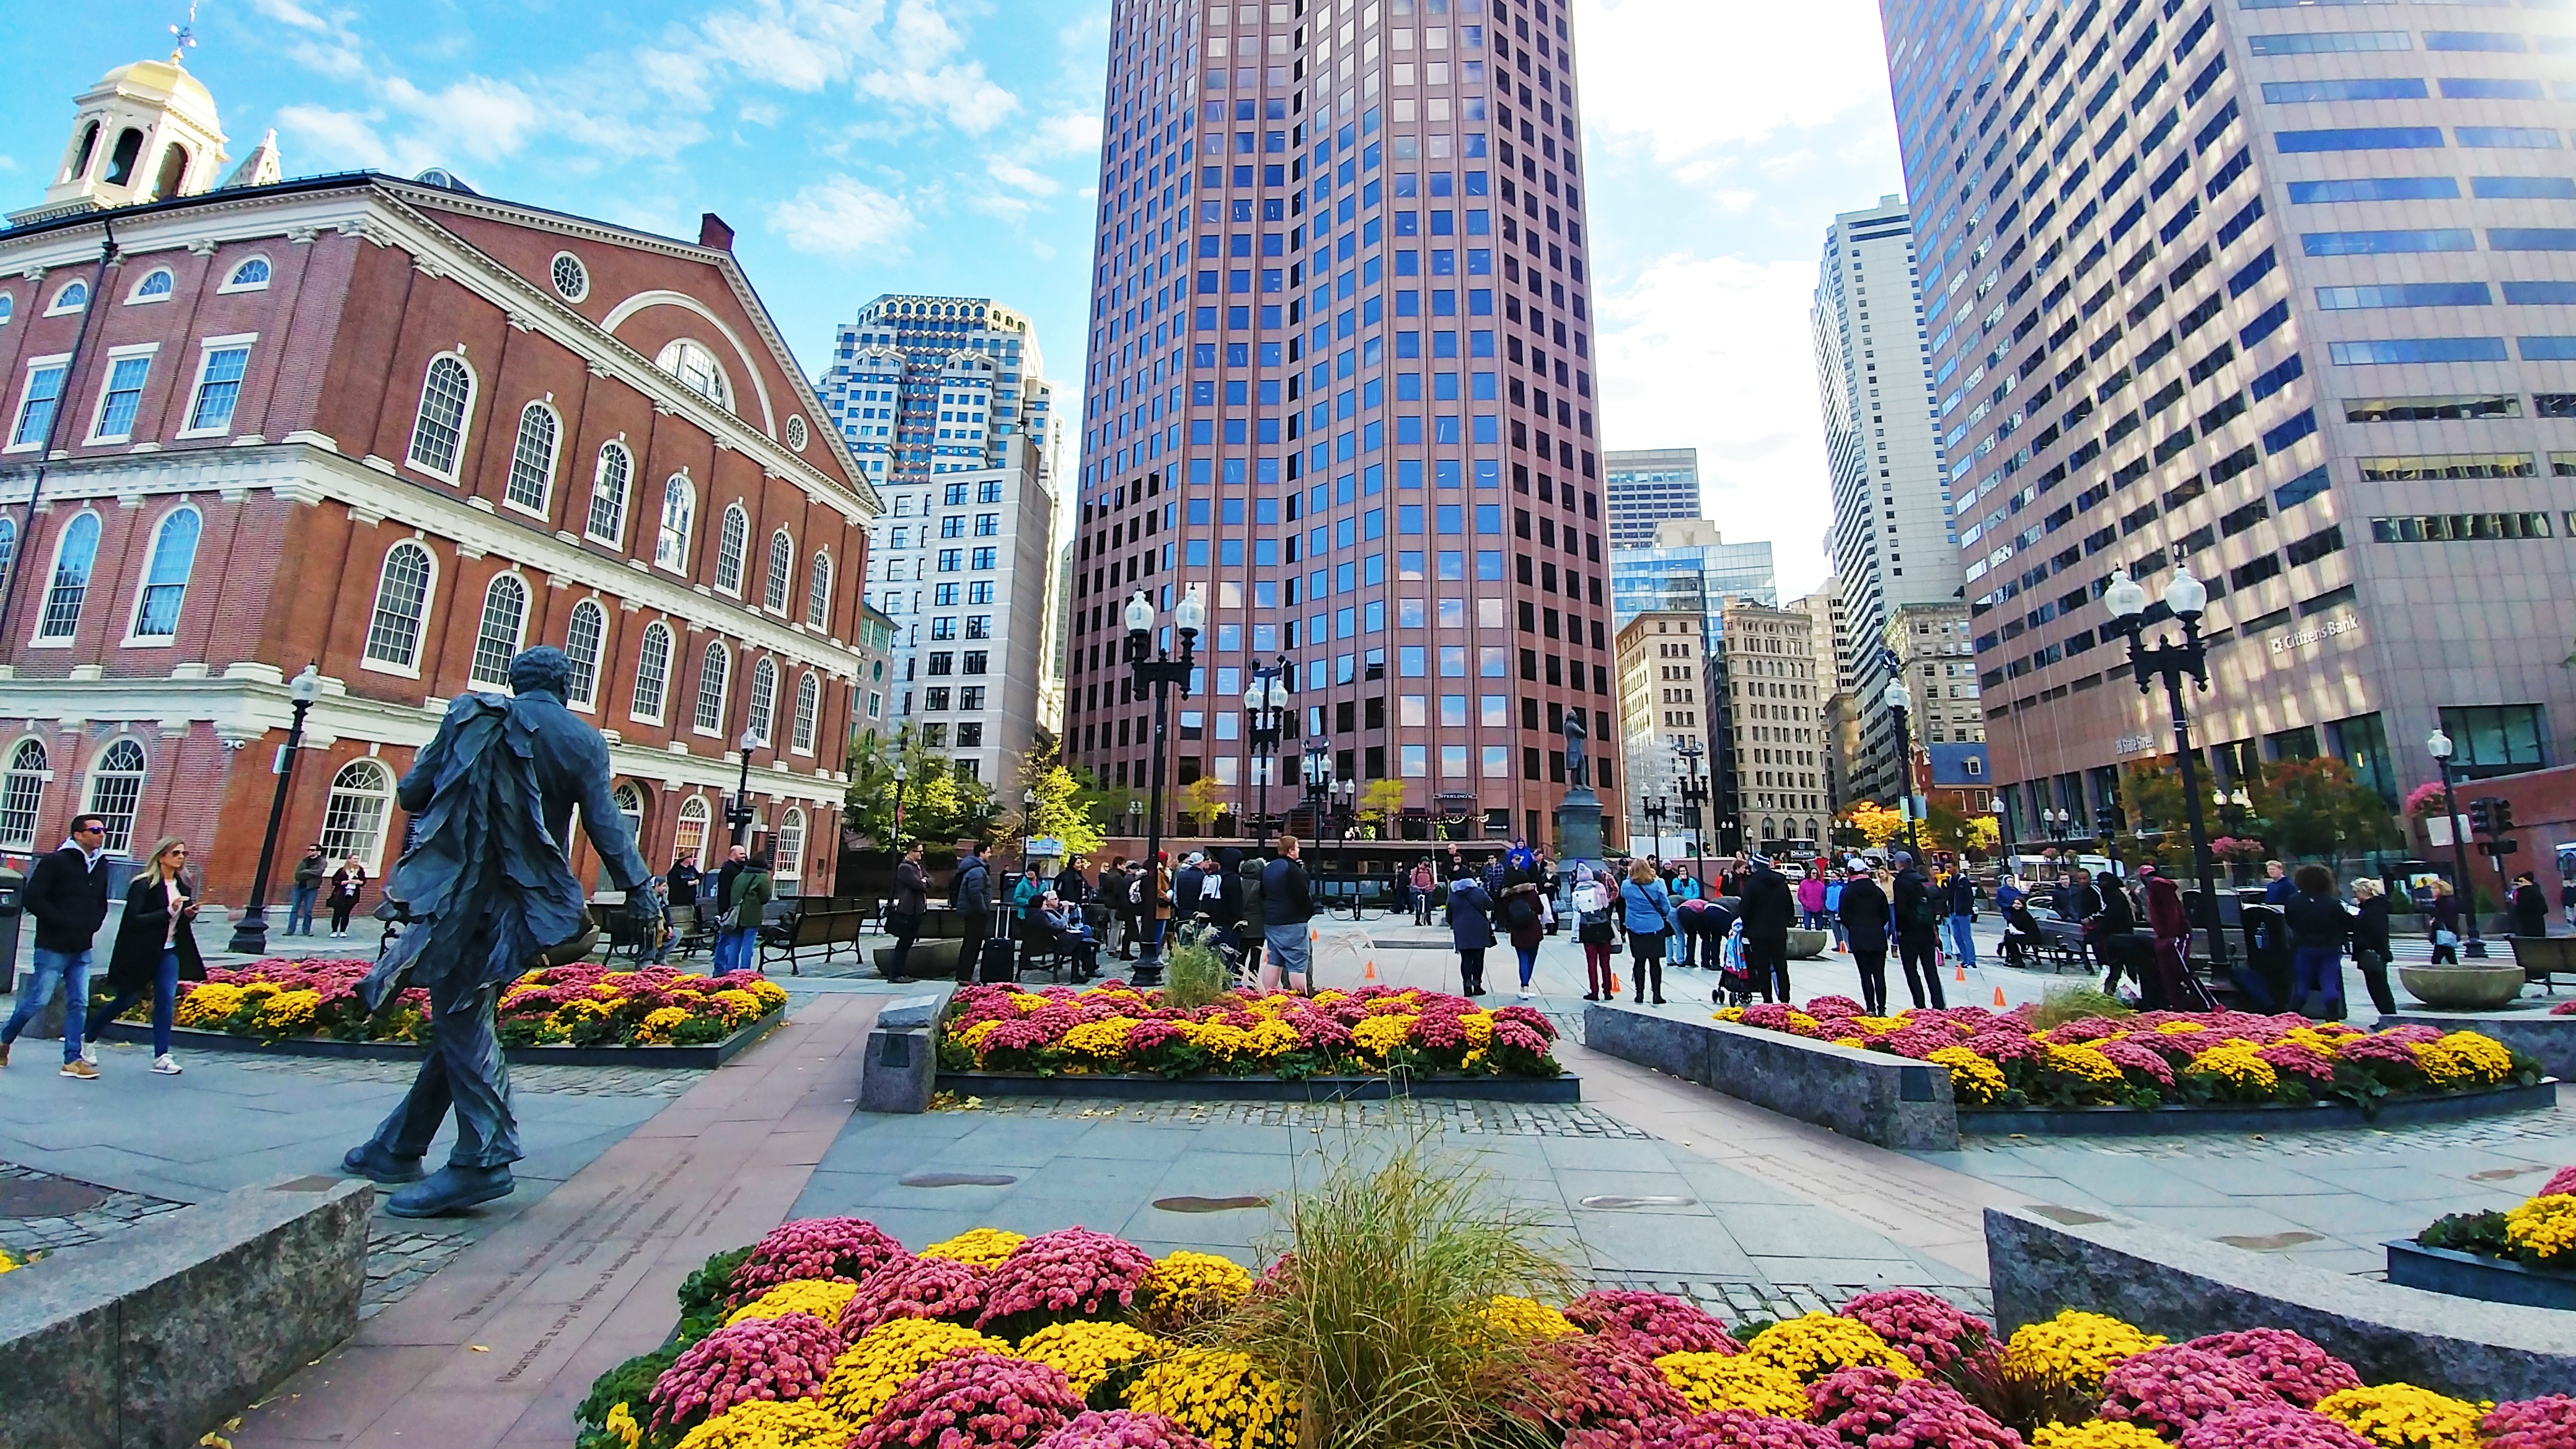 quincy market boston usa automne voyage road-trip blog arpenter le chemin (2)